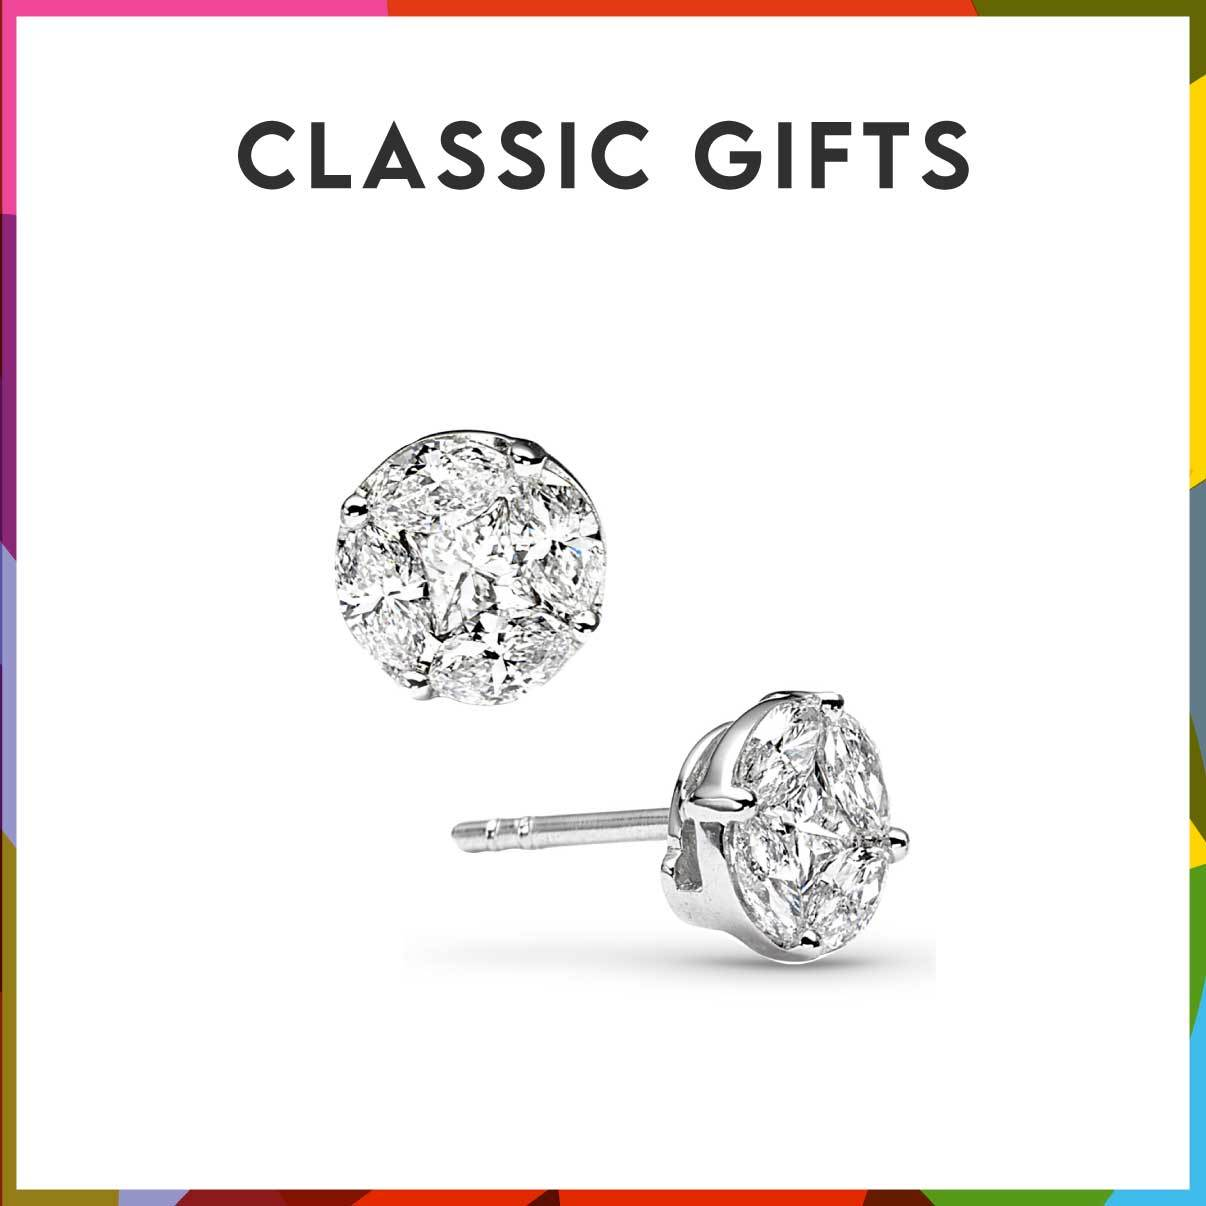 Classic Gifts for Her